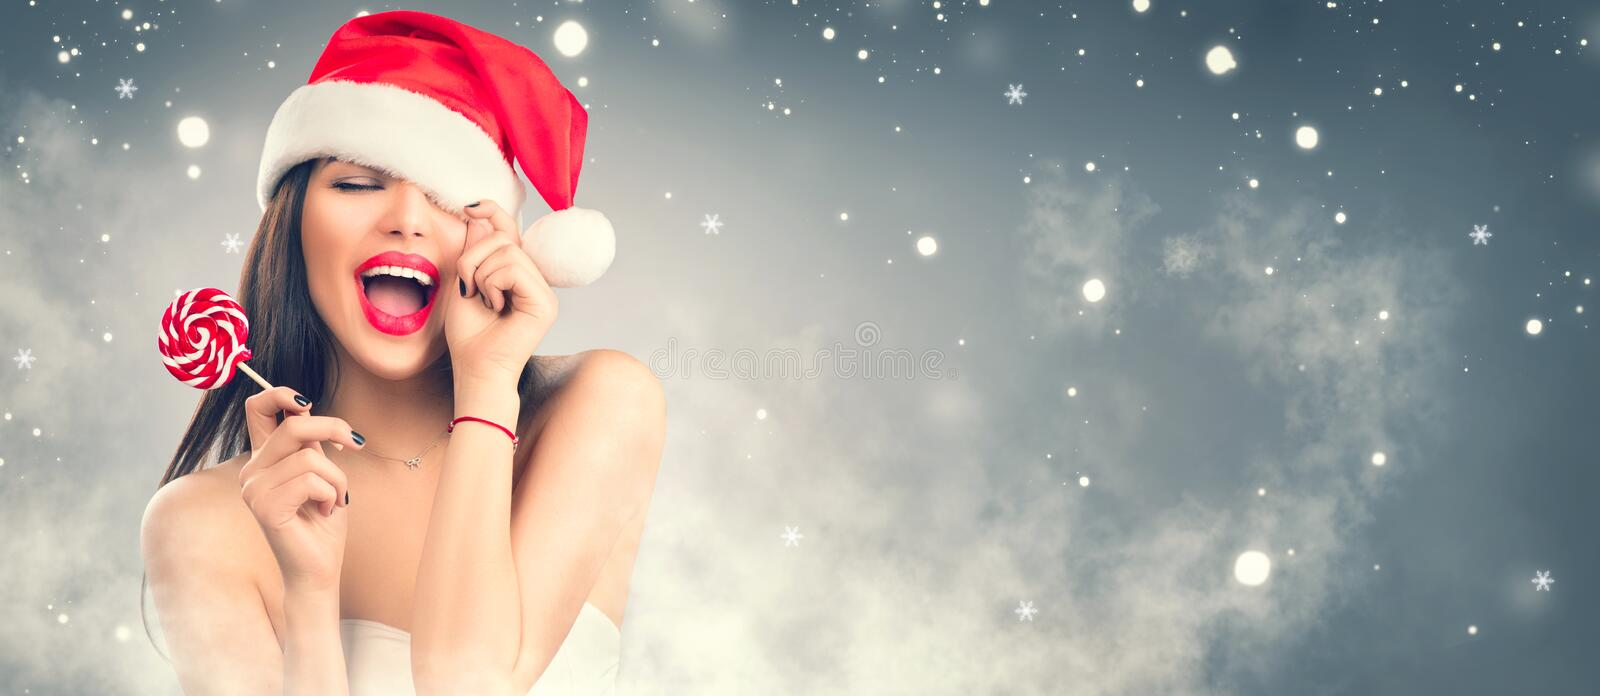 Christmas woman. Joyful model girl in Santa`s hat with red lips and lollipop candy in her hand stock photos